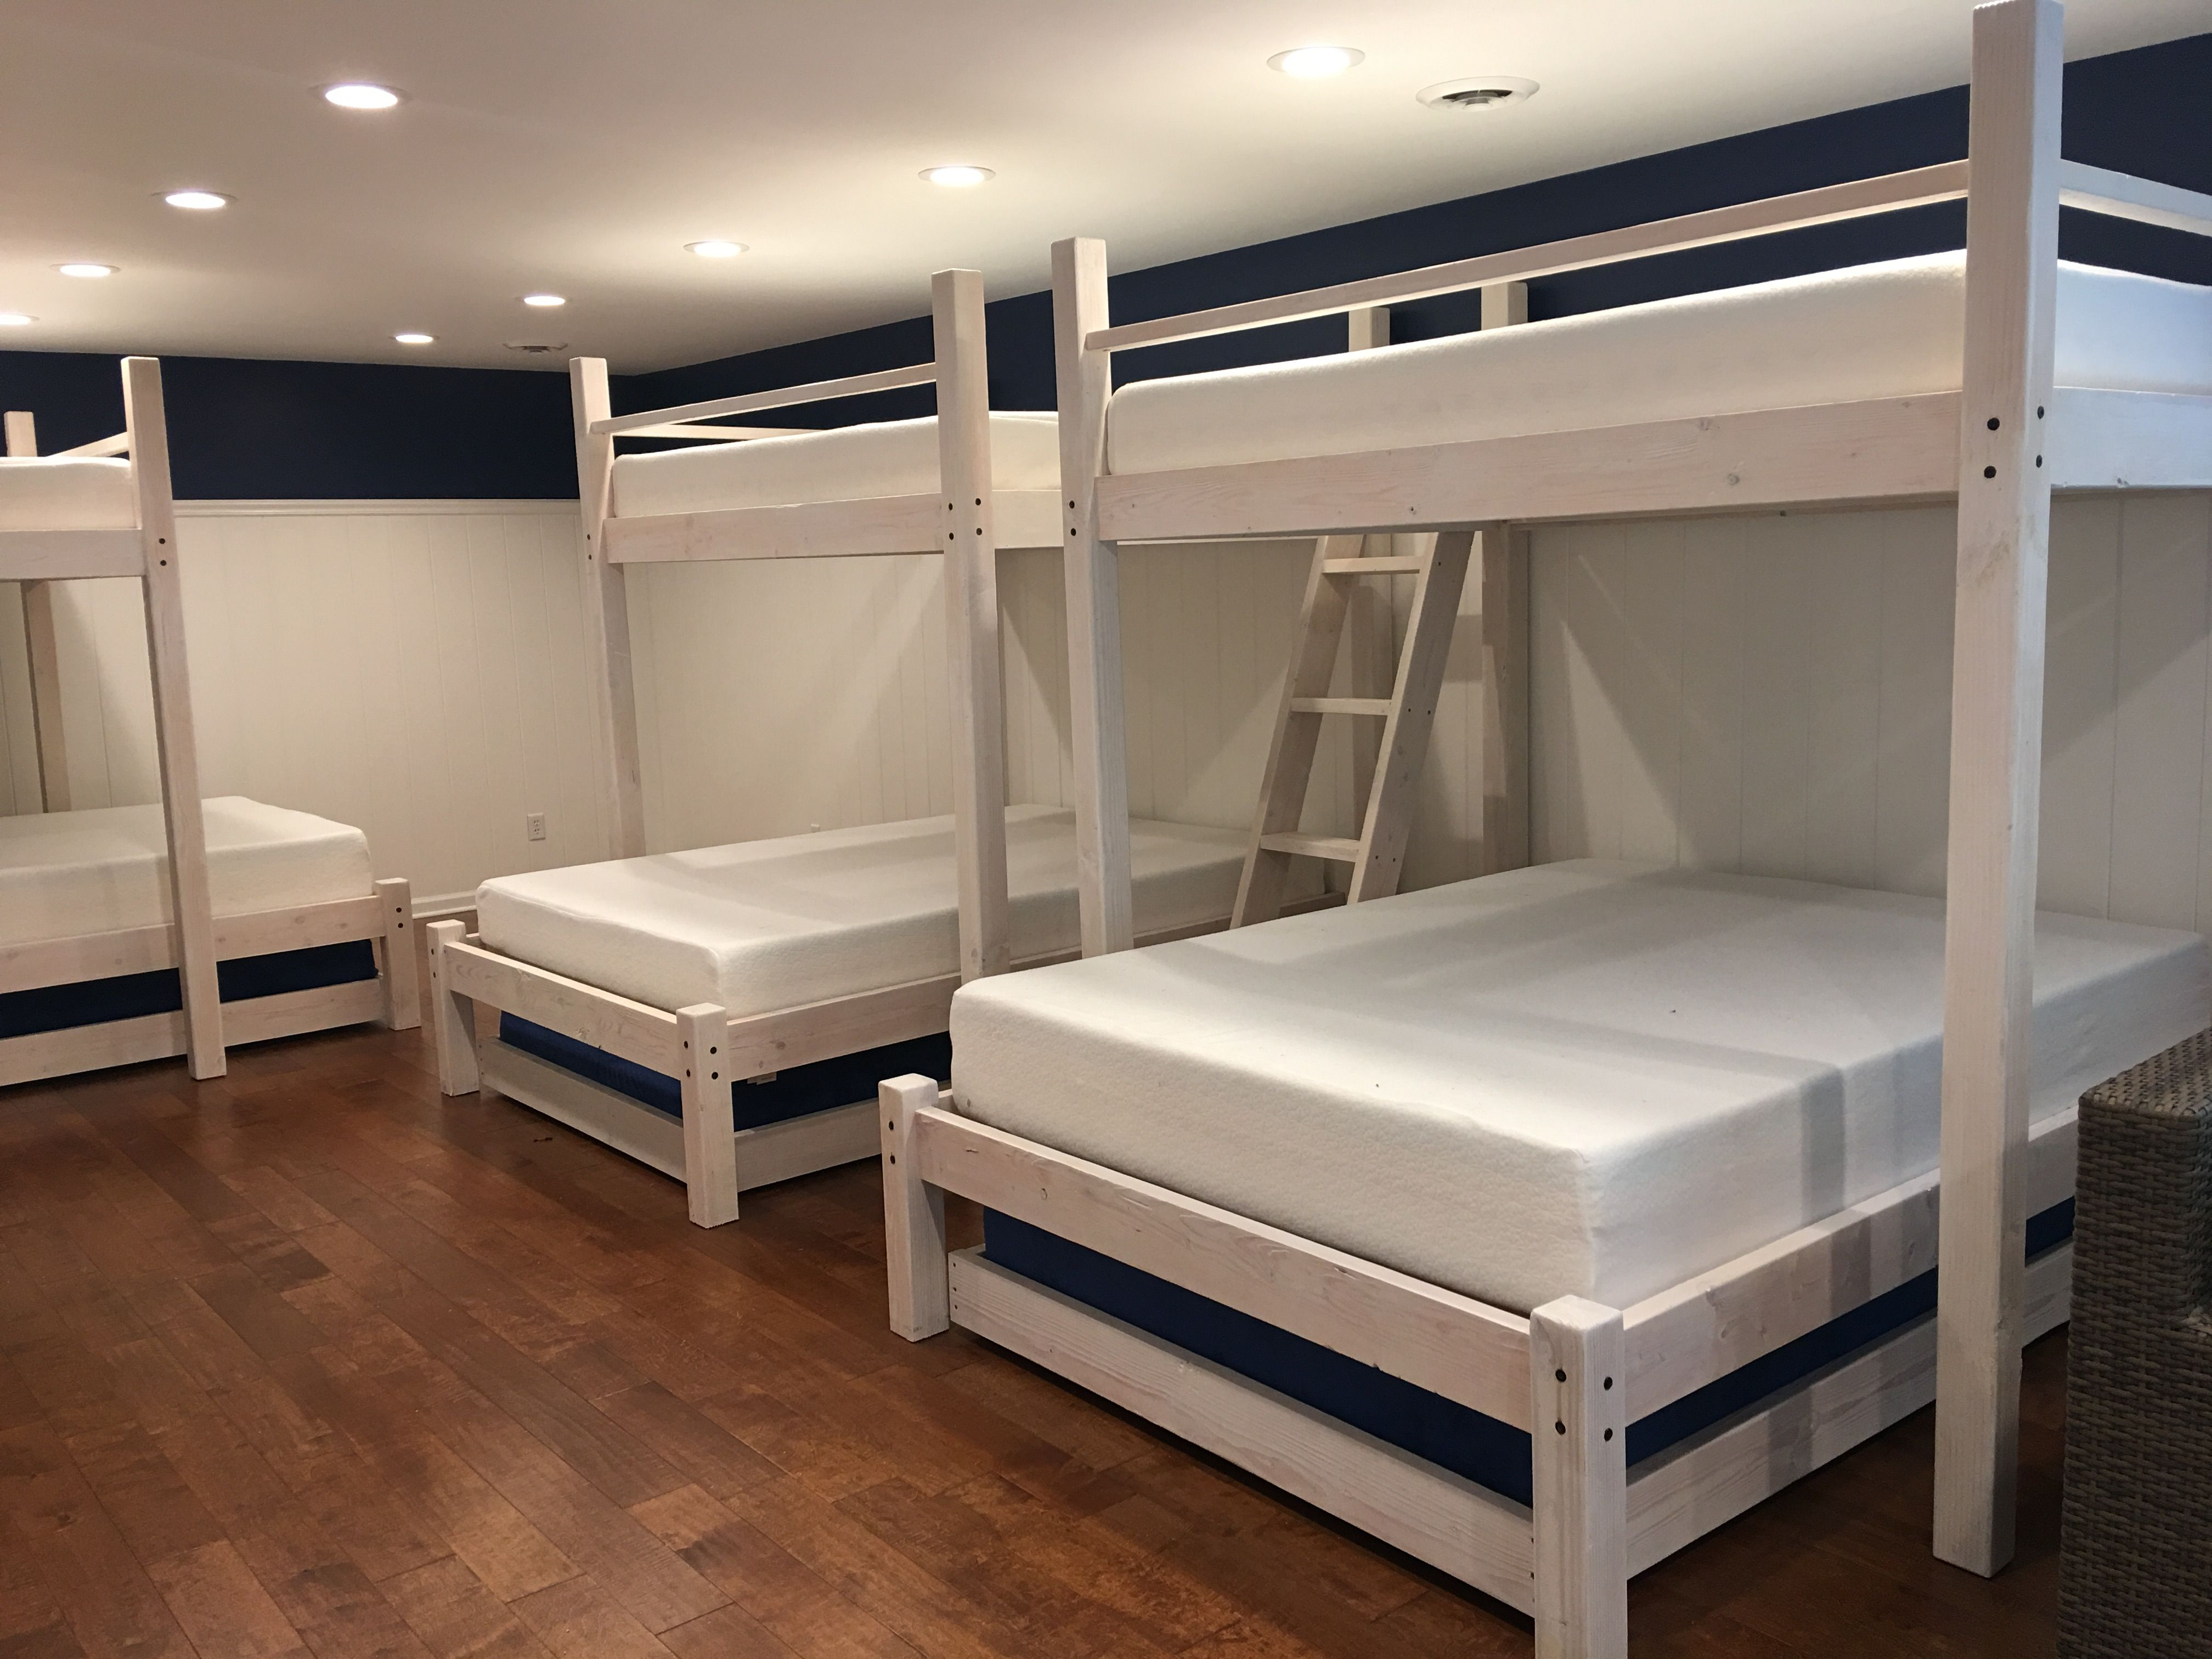 of ikea teenage childrens decoration bedroom on designs furniture classy new with boys images ideas stairs cool design beds shared girls room kids bunk bed nice for adults co slide teens